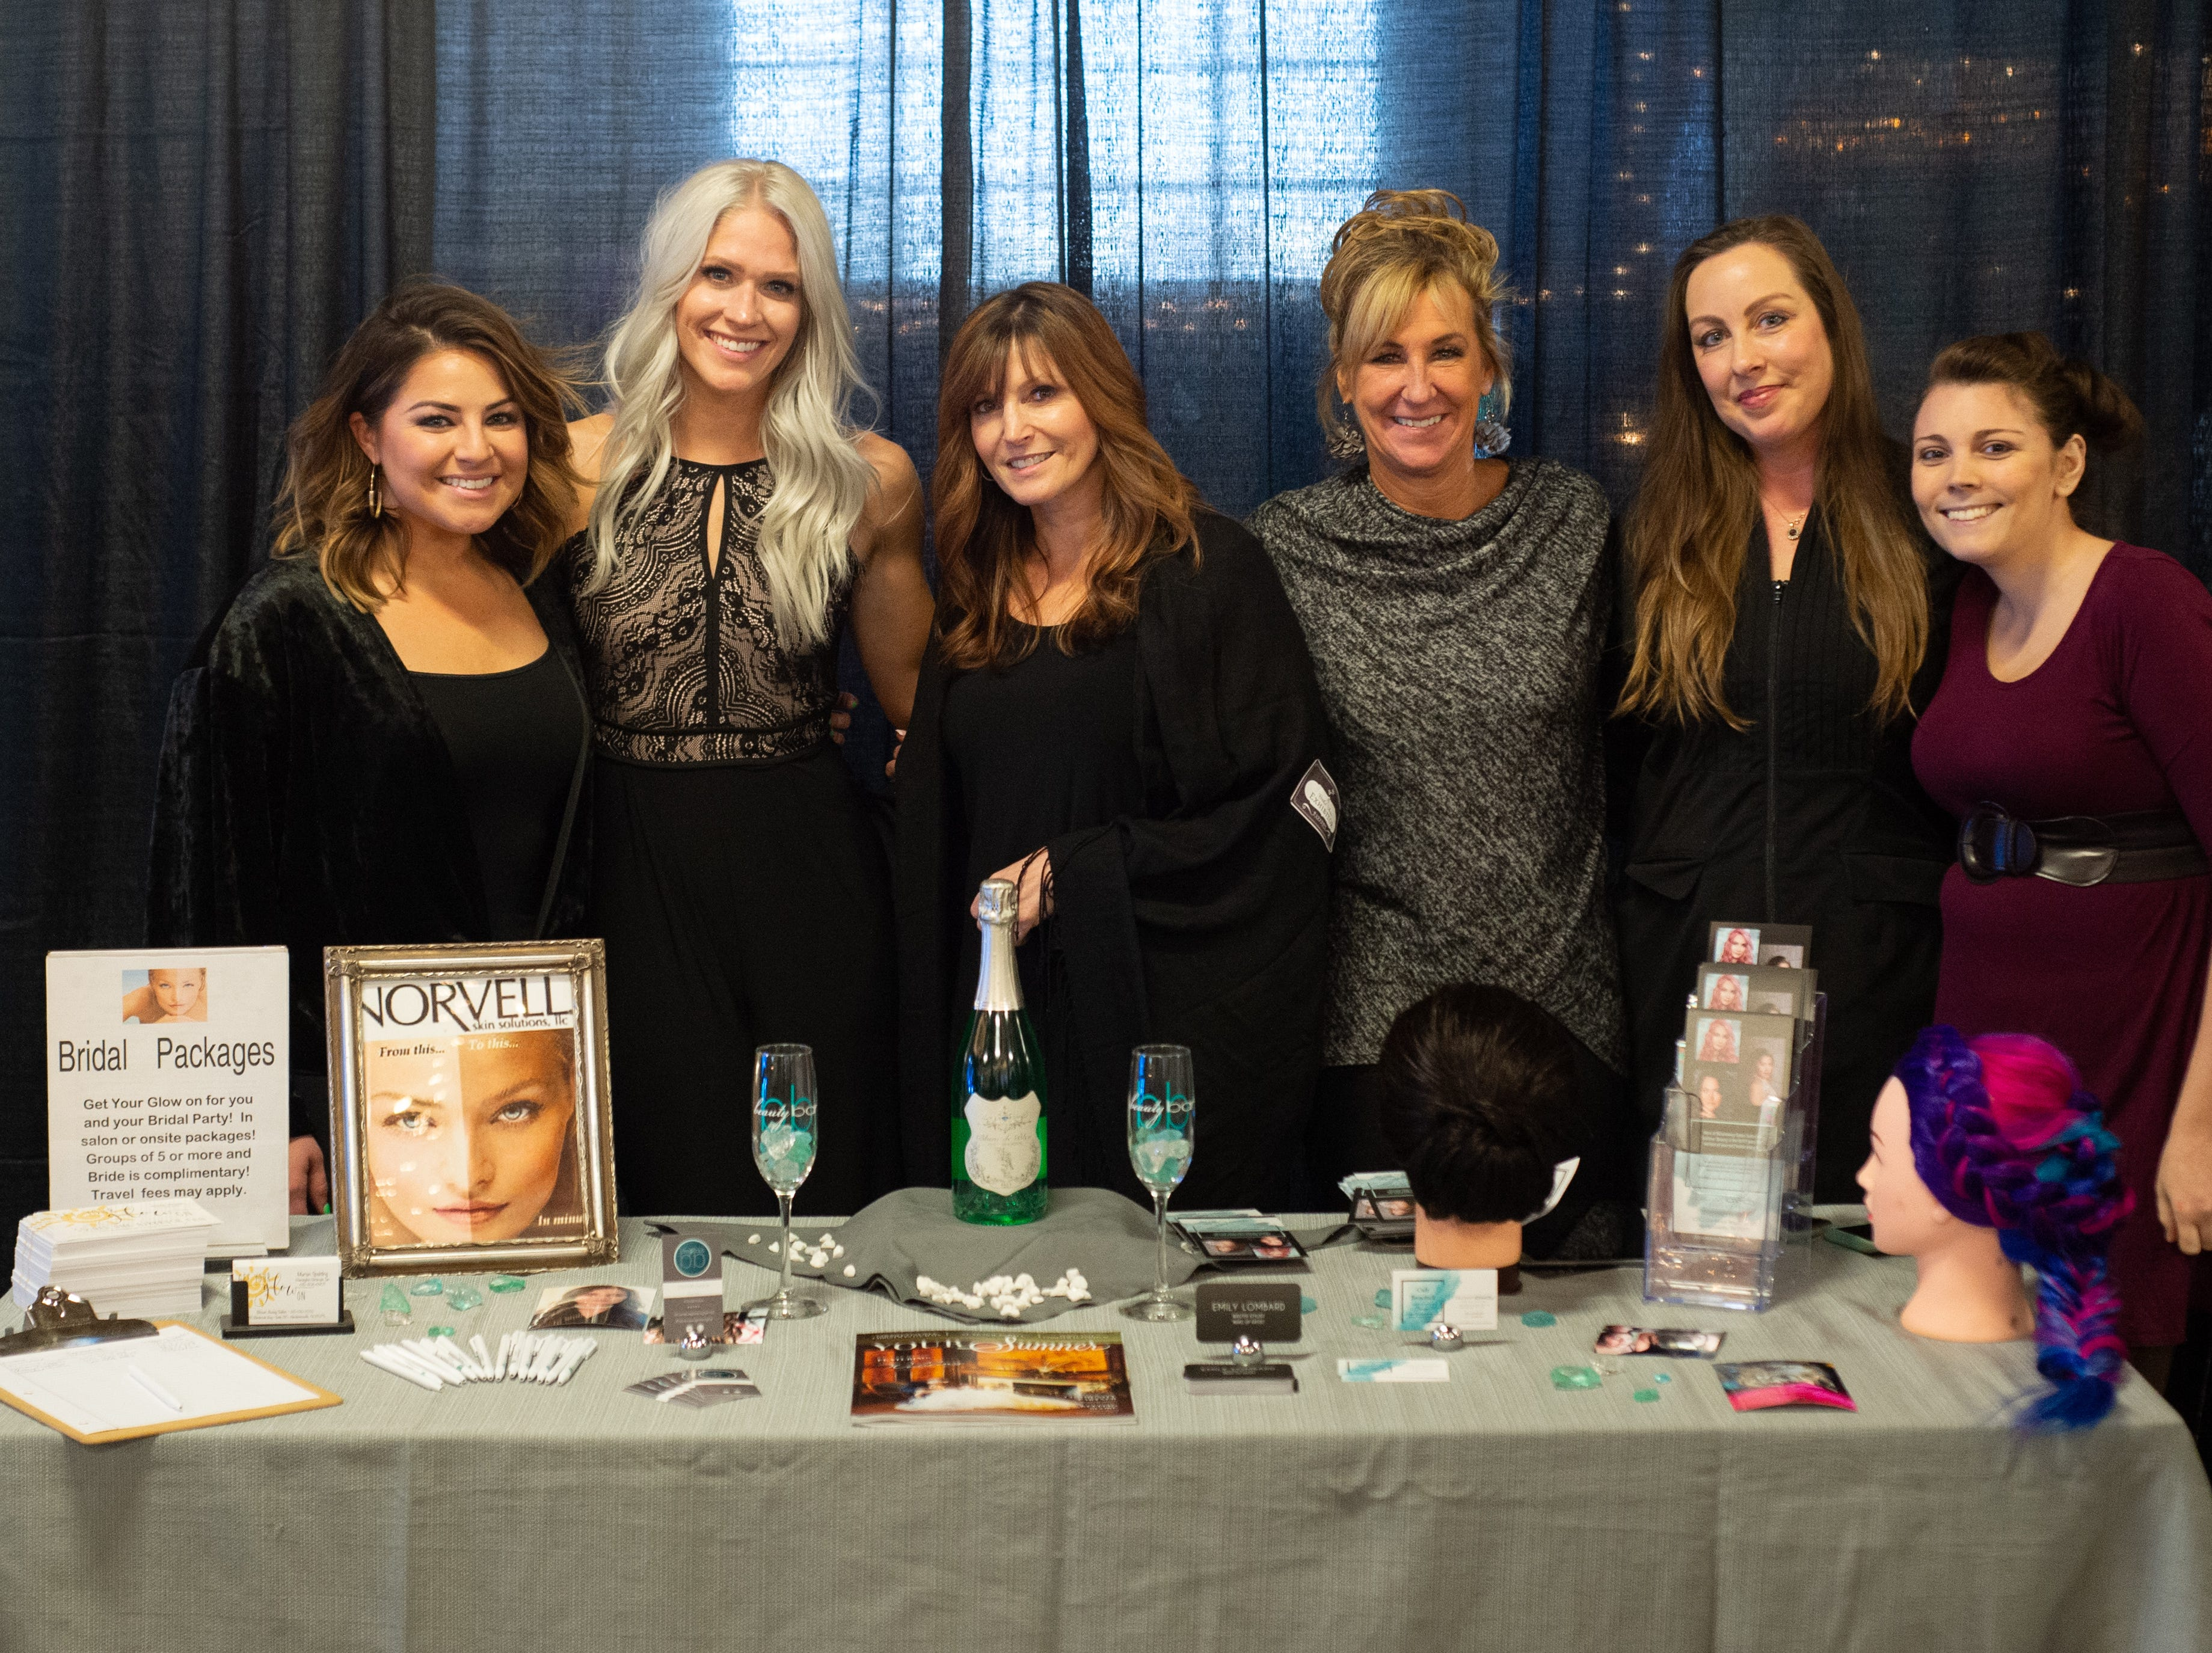 The Sumner County Bridal Show drew a large crowd to the Epic Event Center in Gallatin on Sunday, Jan. 27. The event was presented by the Gallatin Chamber of Commerce and Epic Event Center.